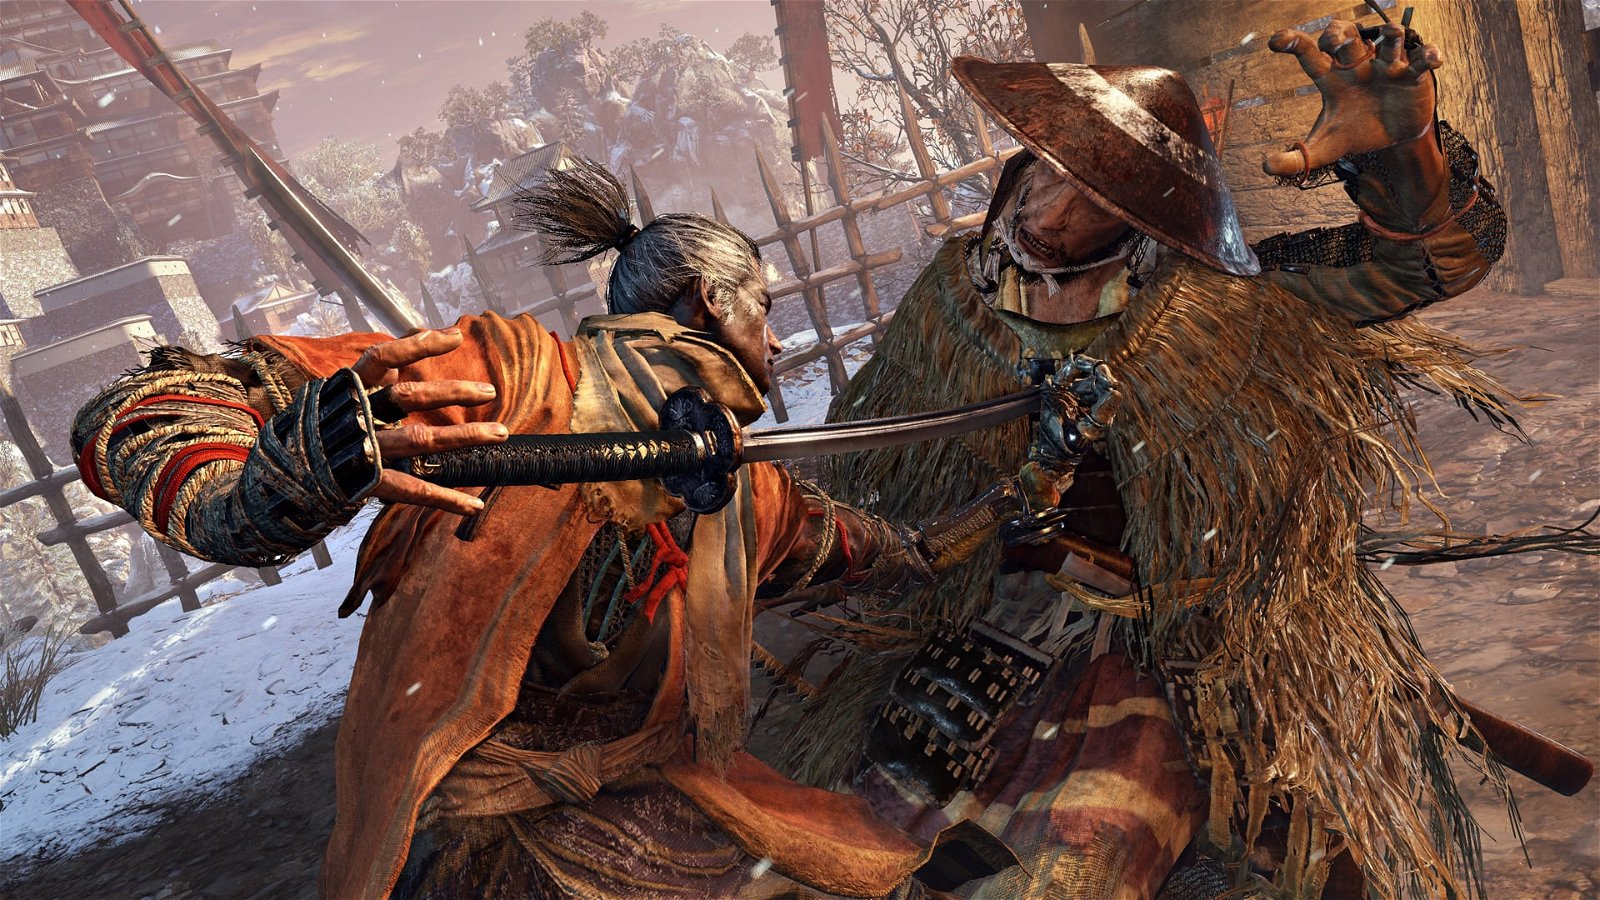 A Modder Added Multiplayer into Sekiro for Double Trouble 1